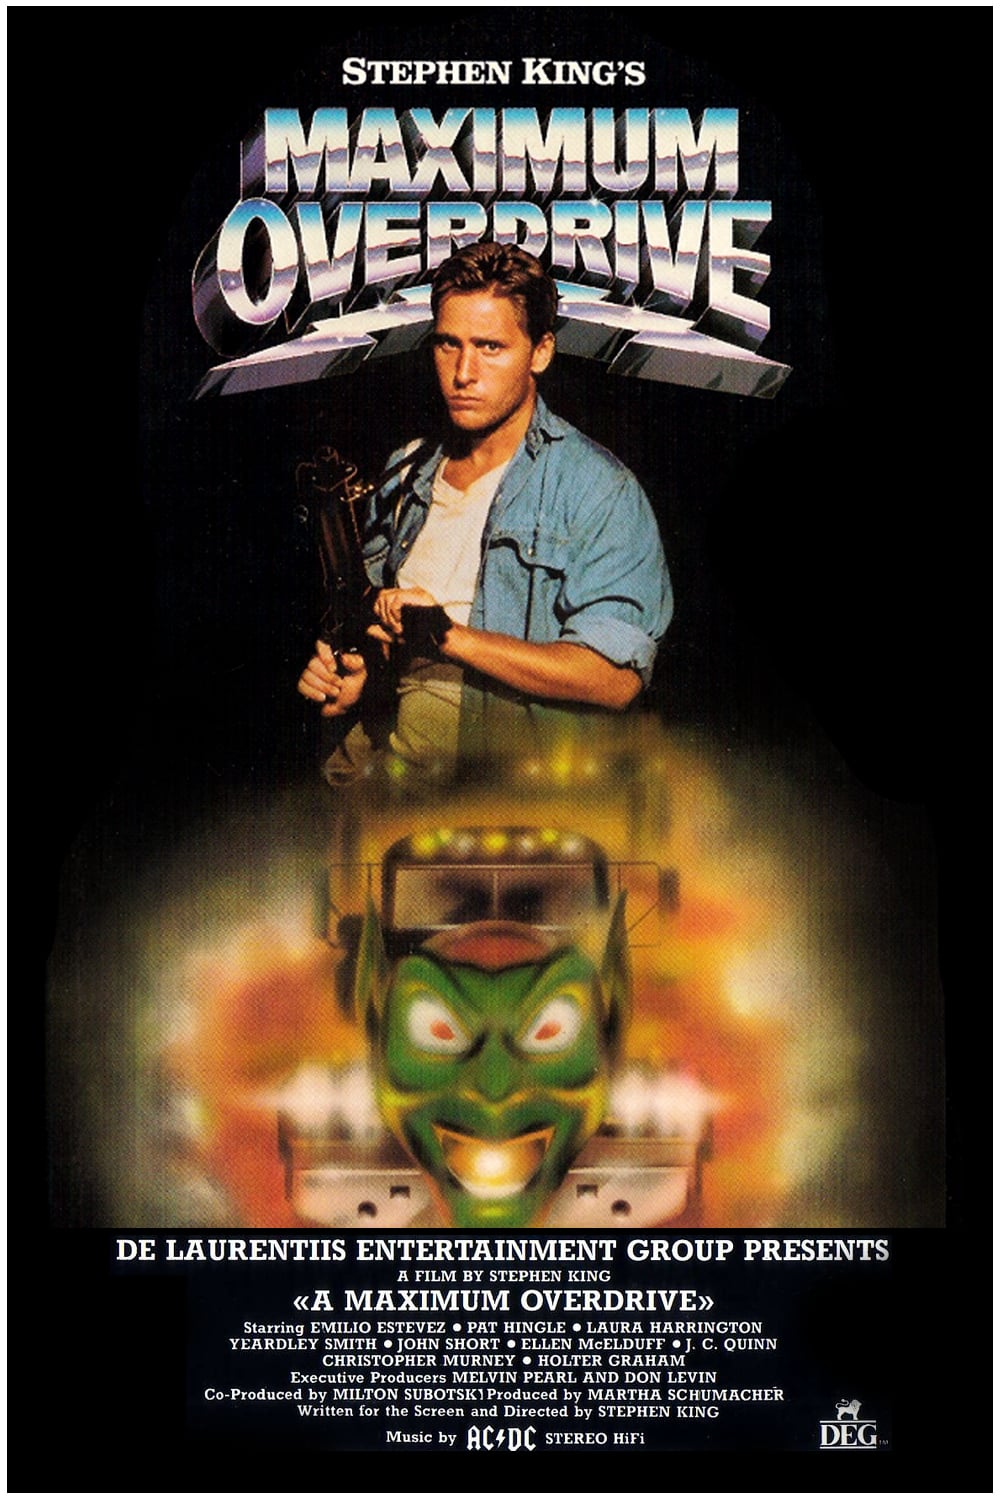 30 - Maximum Overdrive